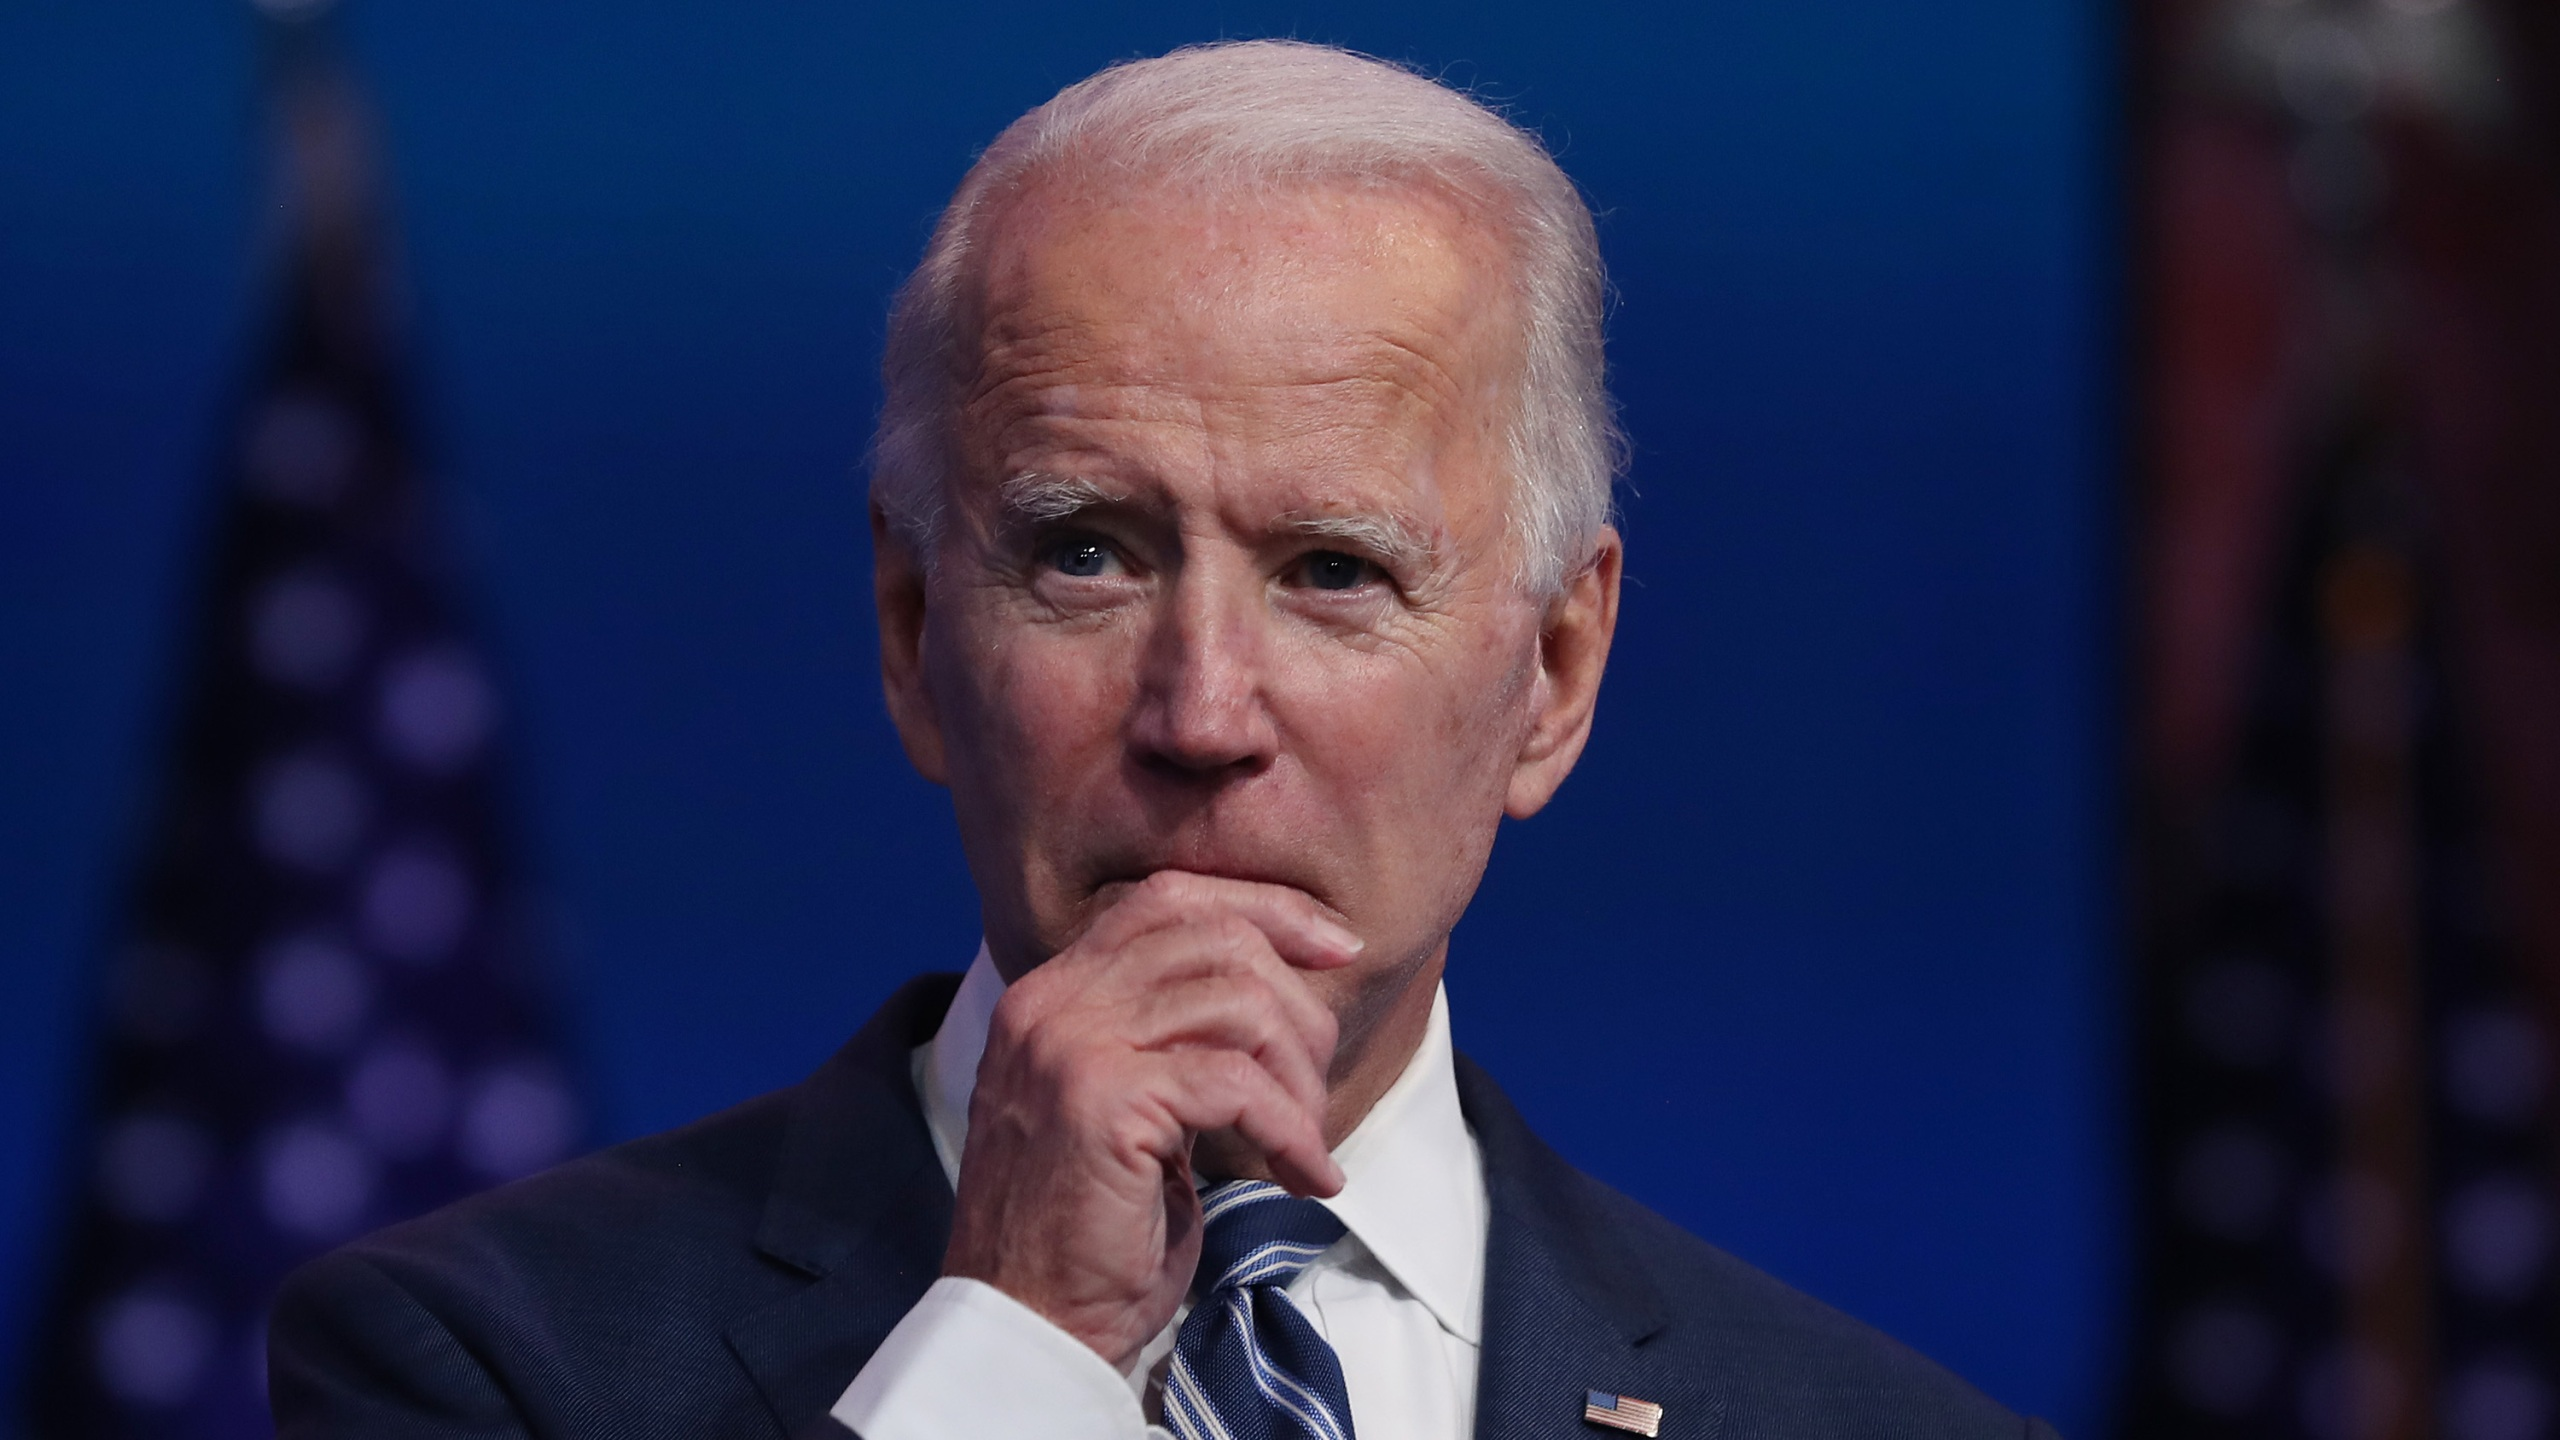 President-elect Joe Biden addresses the media about the Trump administration's lawsuit to overturn the Affordable Care Act on Nov. 10, 2020, at the Queen Theater in Wilmington, Delaware. (Joe Raedle / Getty Images)